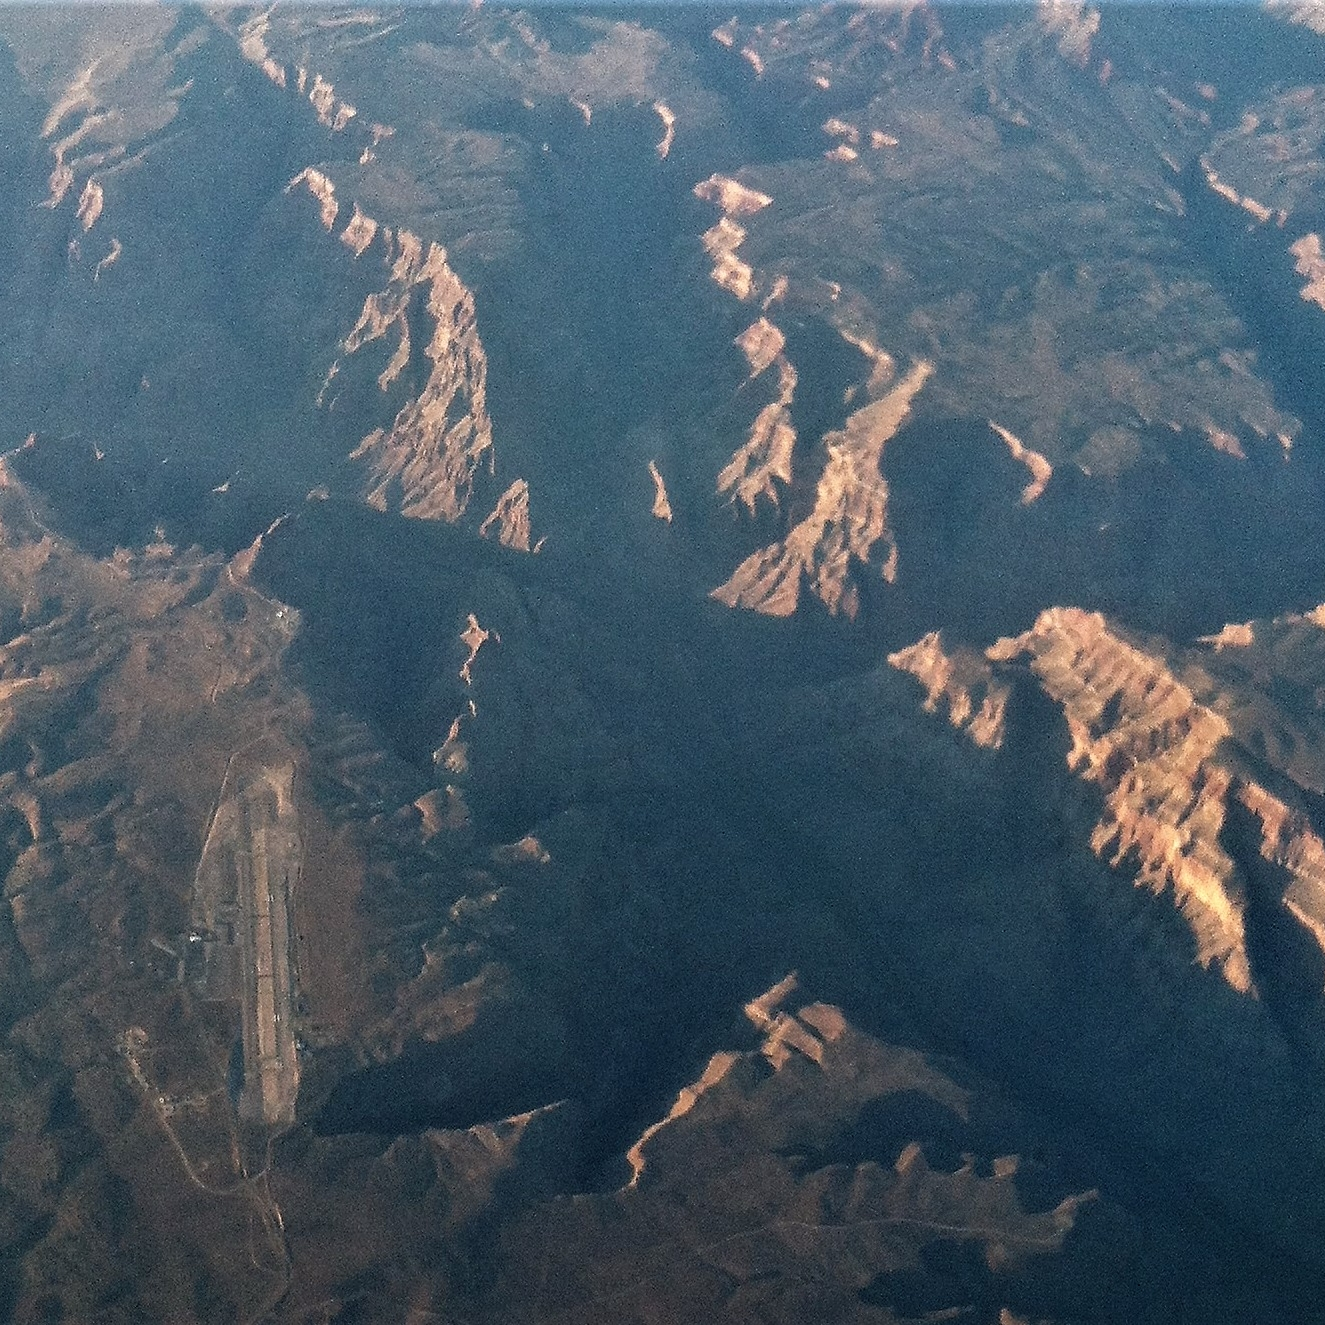 grand canyon west from high altitude.JPG